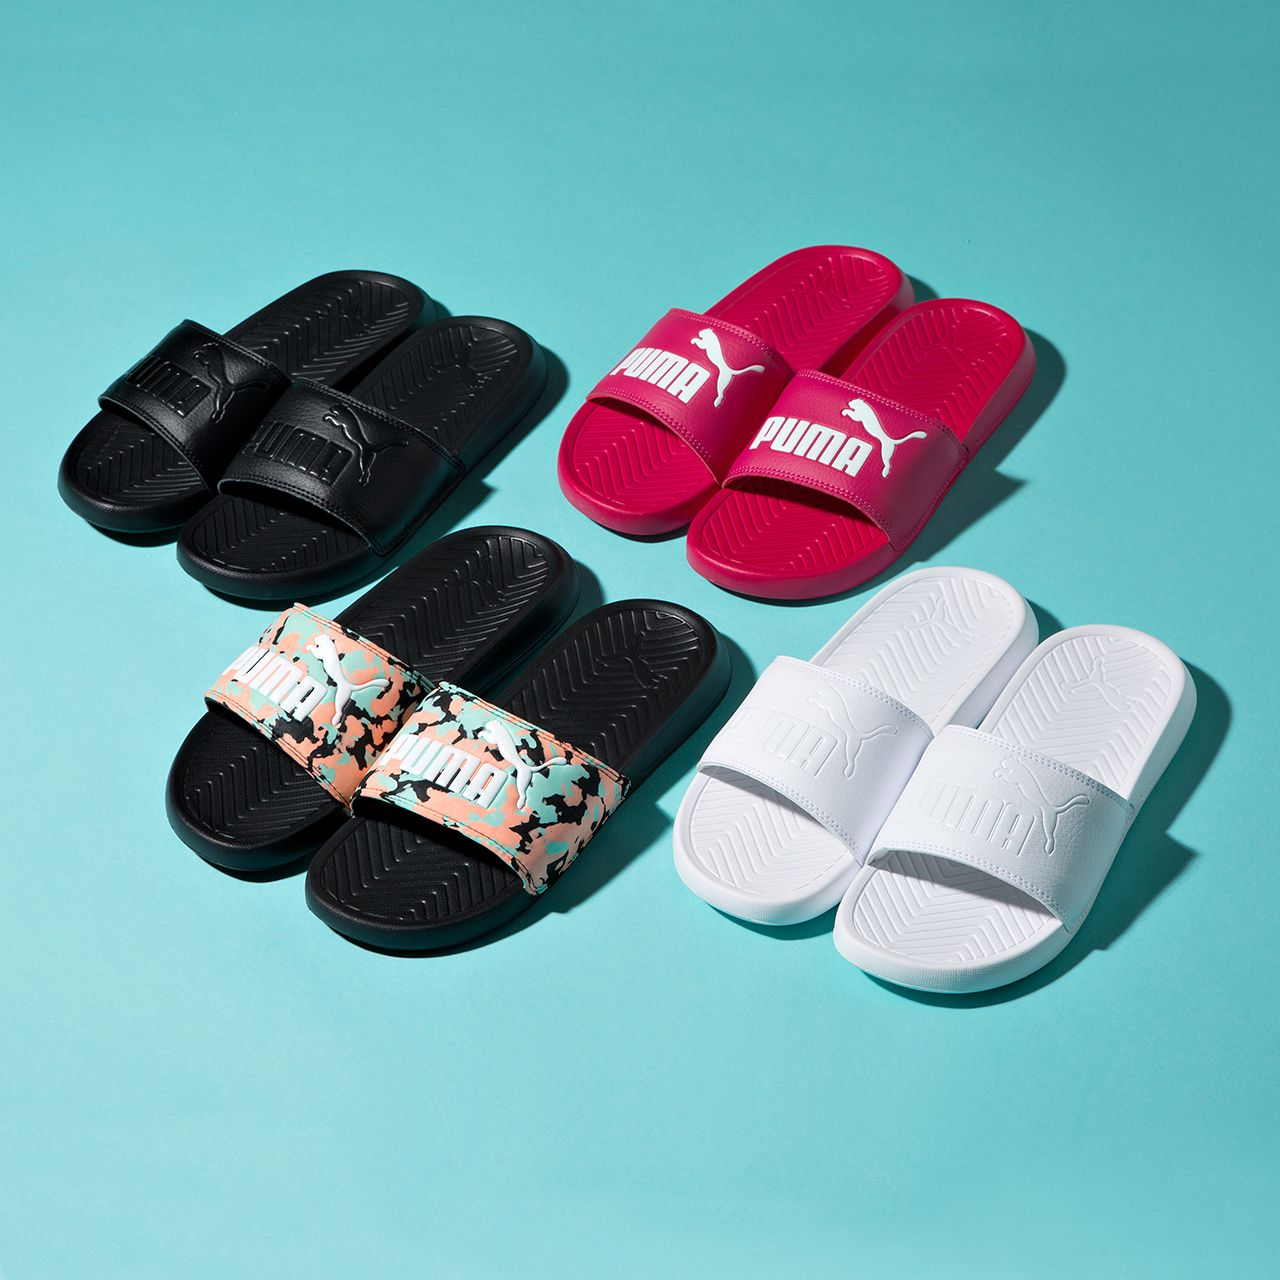 8e71264399a8 Prepare for the holiday season with the Puma Womens Popcat Slide Sandal.